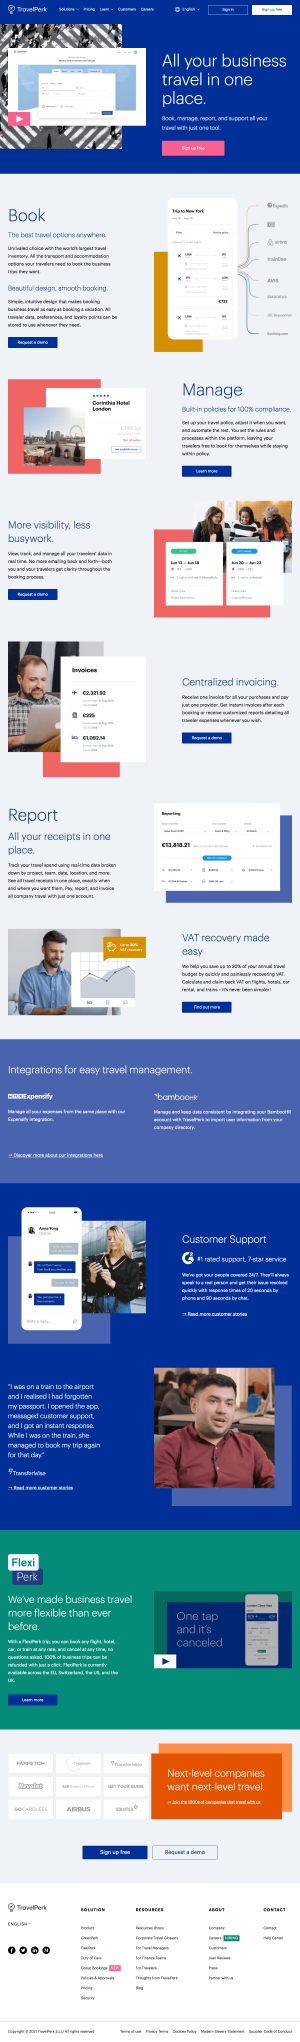 TravelPerk – Features page